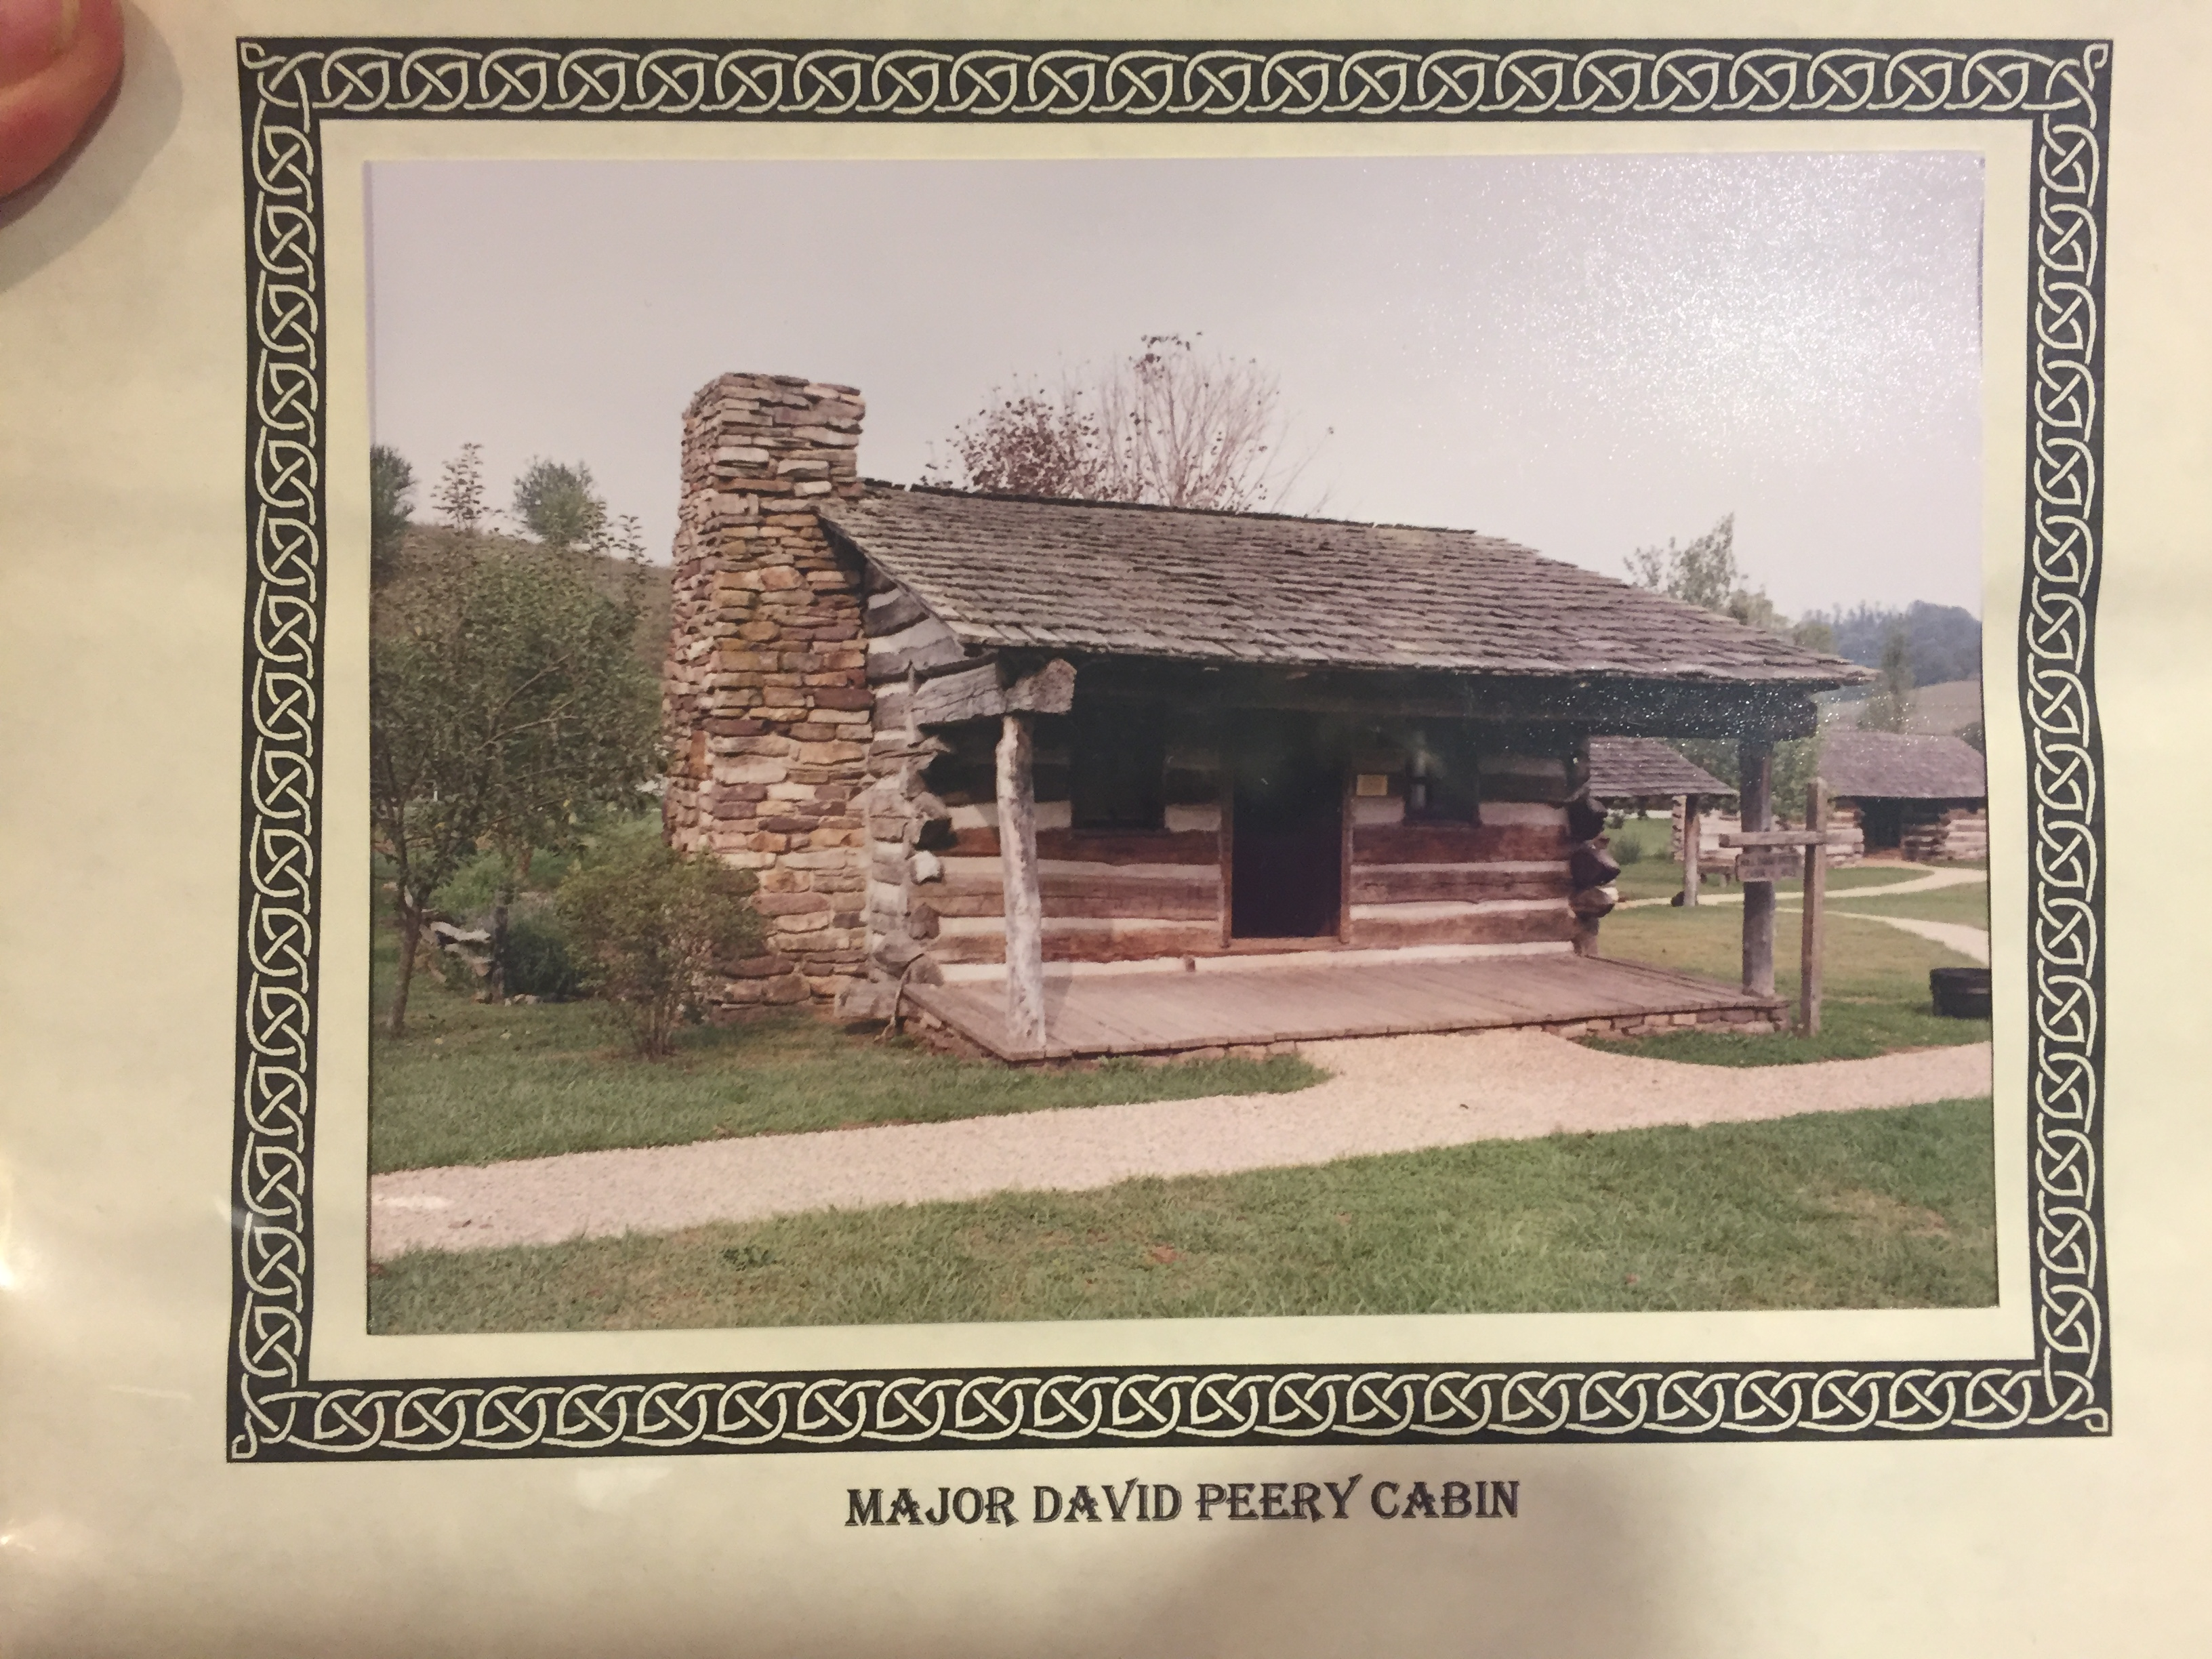 Major David Peery Cabin